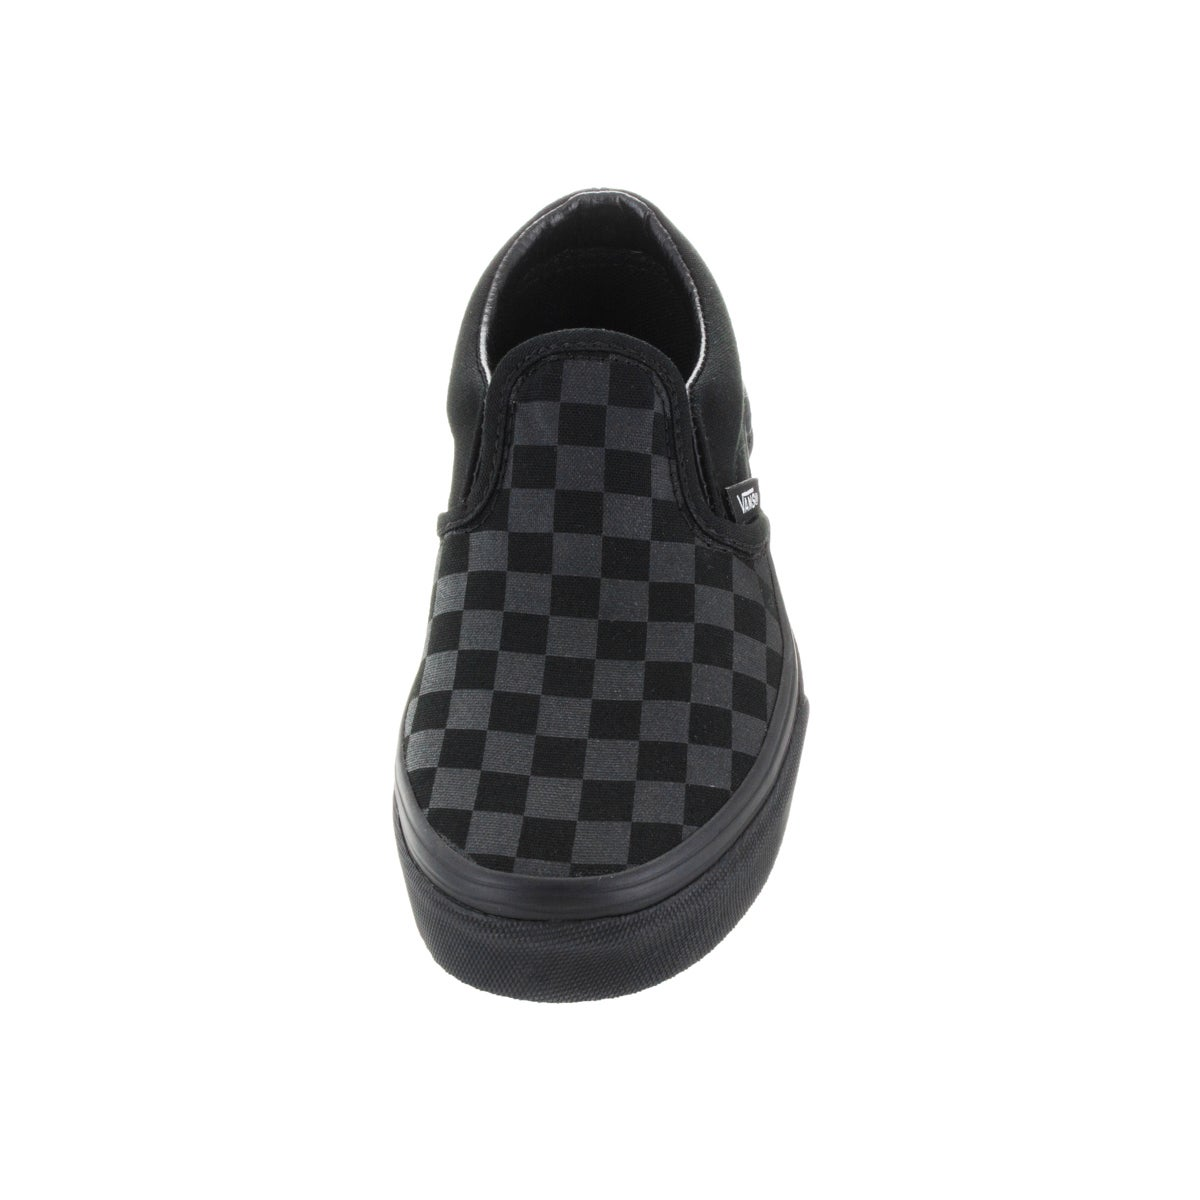 34bc45d87bd Shop Vans Kid s Classic Slip-On (Checkerboard) Mono Black Skate Shoe - Free  Shipping On Orders Over  45 - Overstock - 12321280